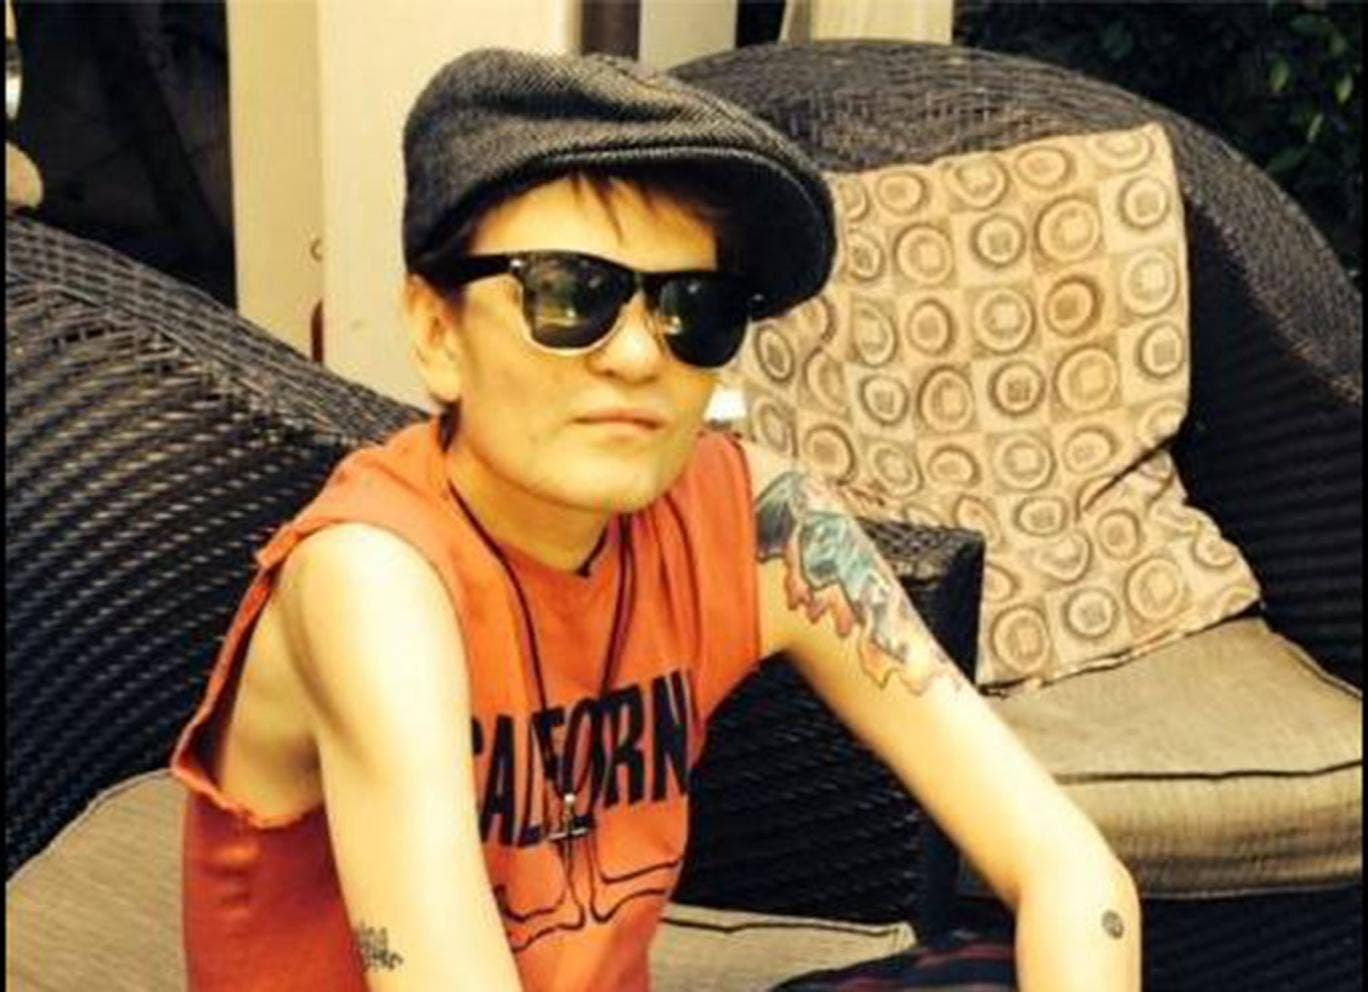 deryck whibley who is he dating